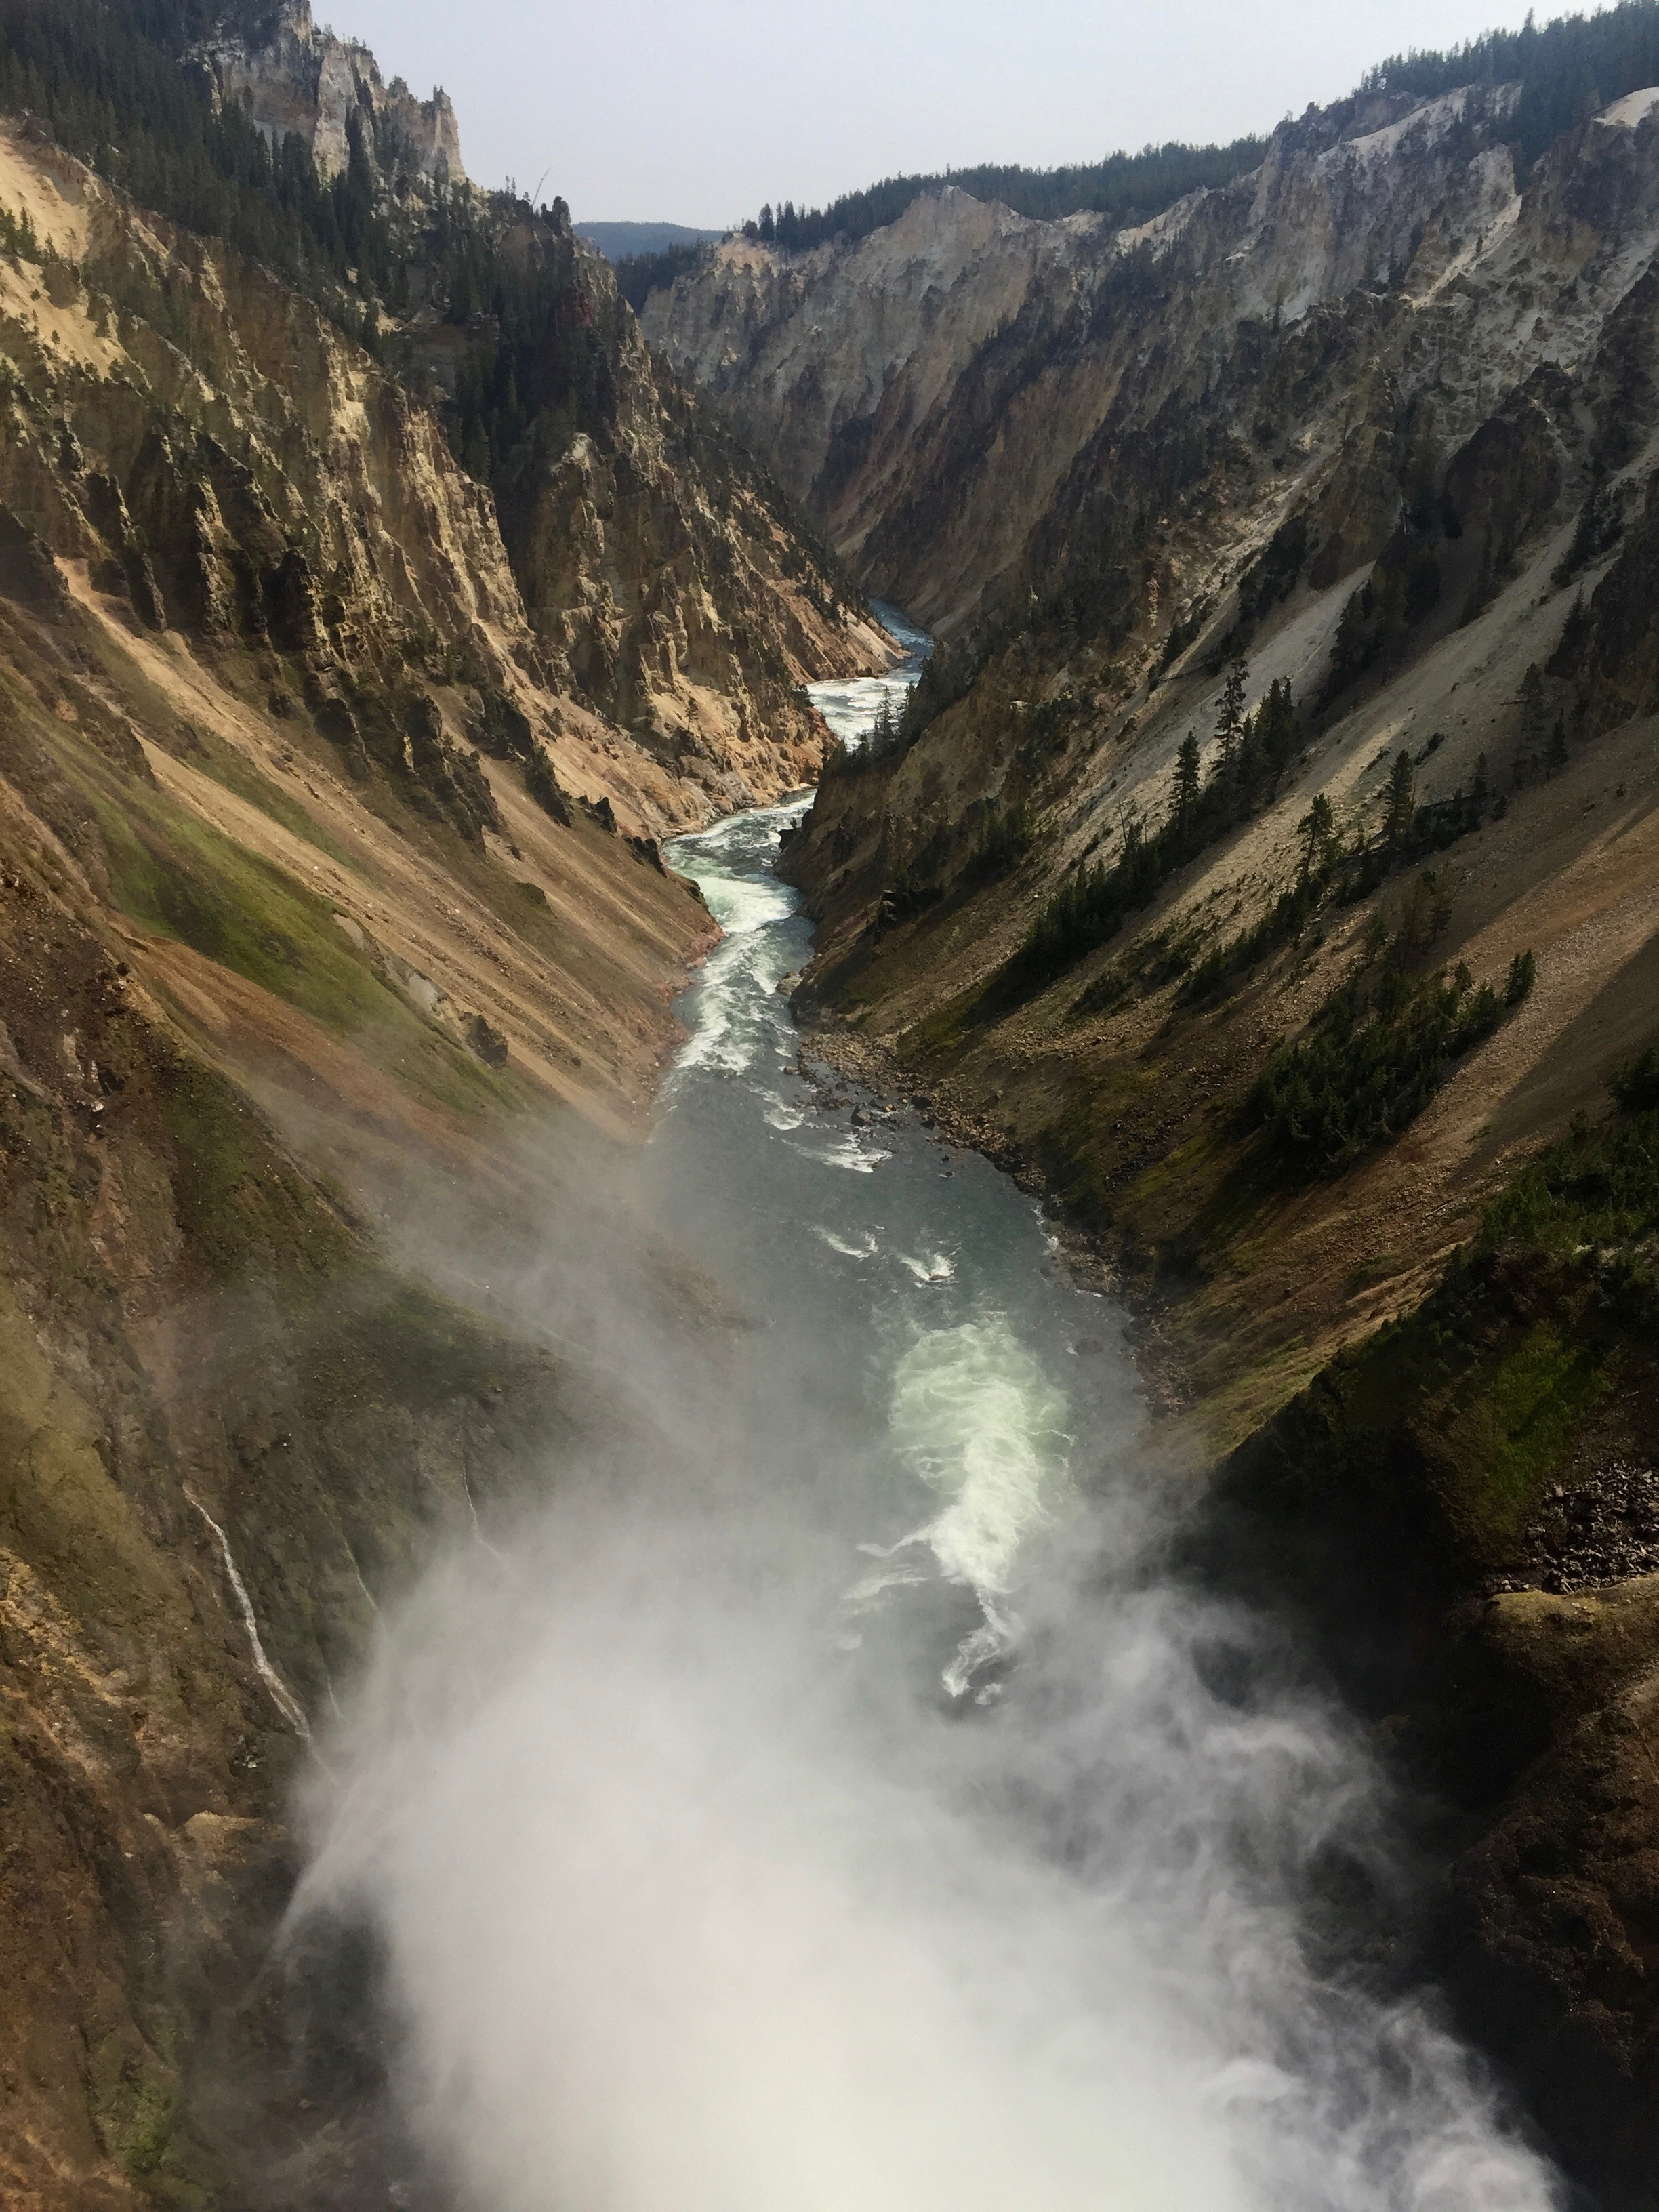 Yellowstone is gorges!